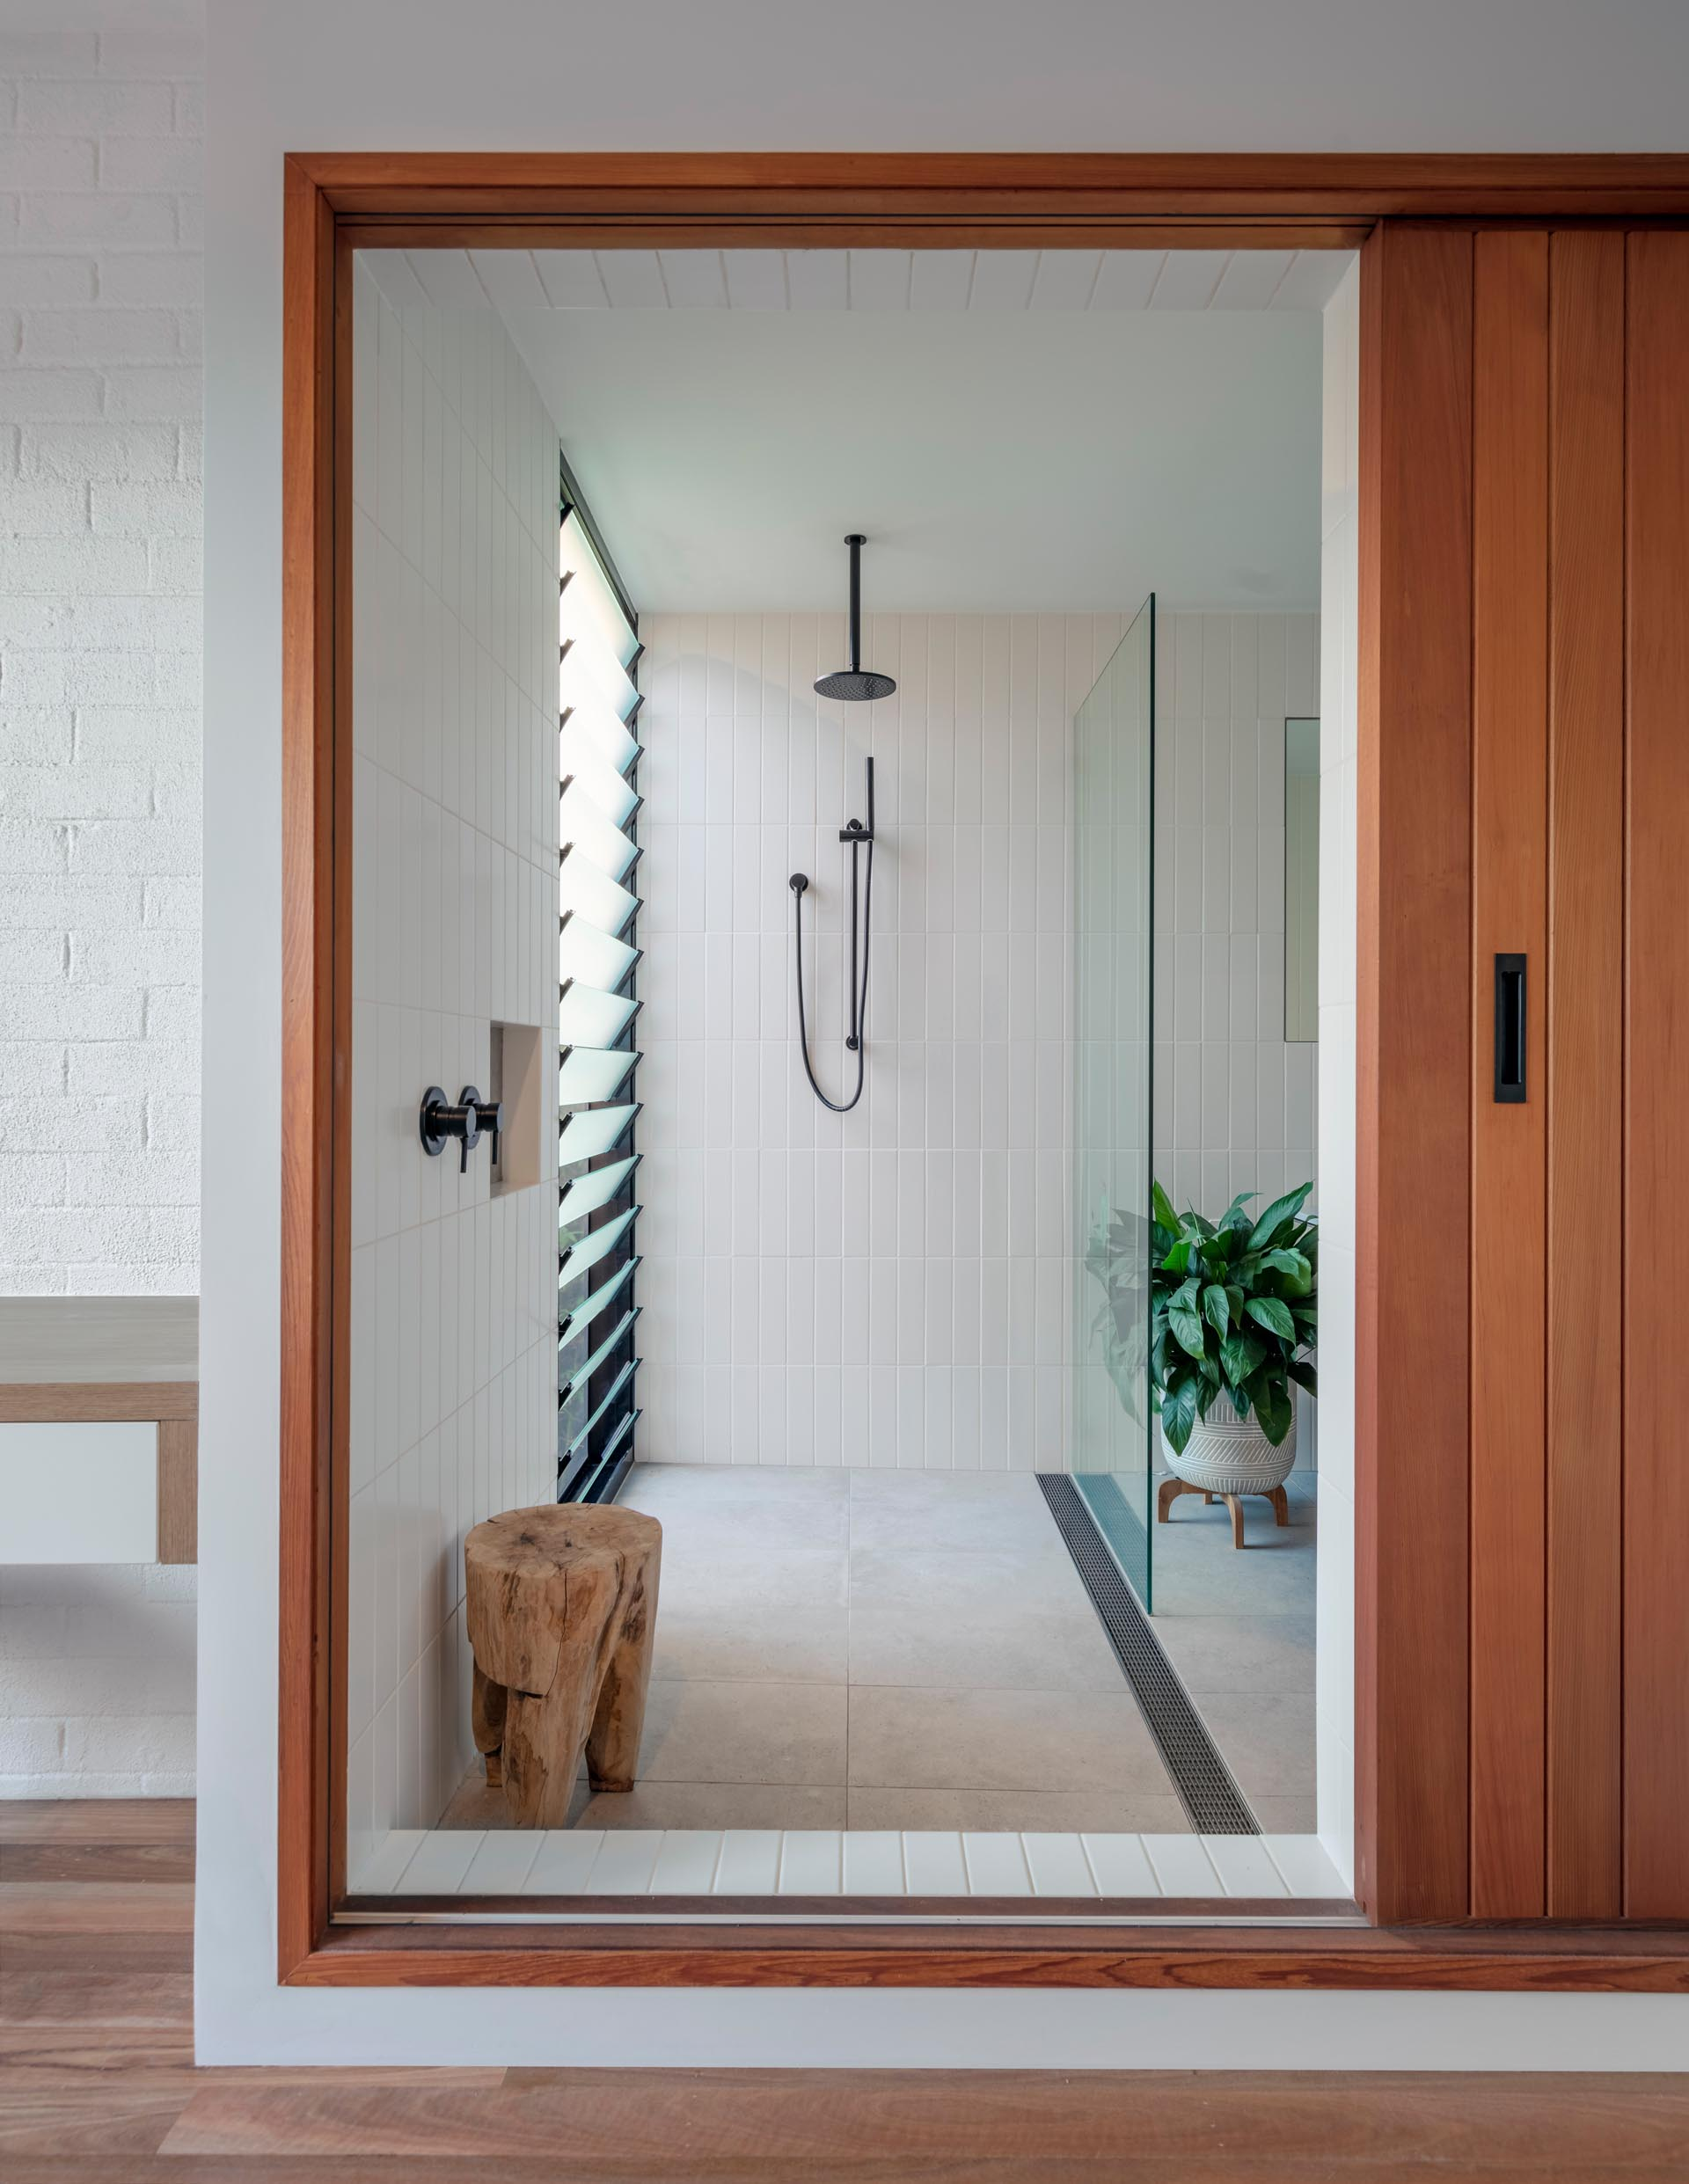 A modern bathroom with white rectangular tiles and a louver window in the shower.